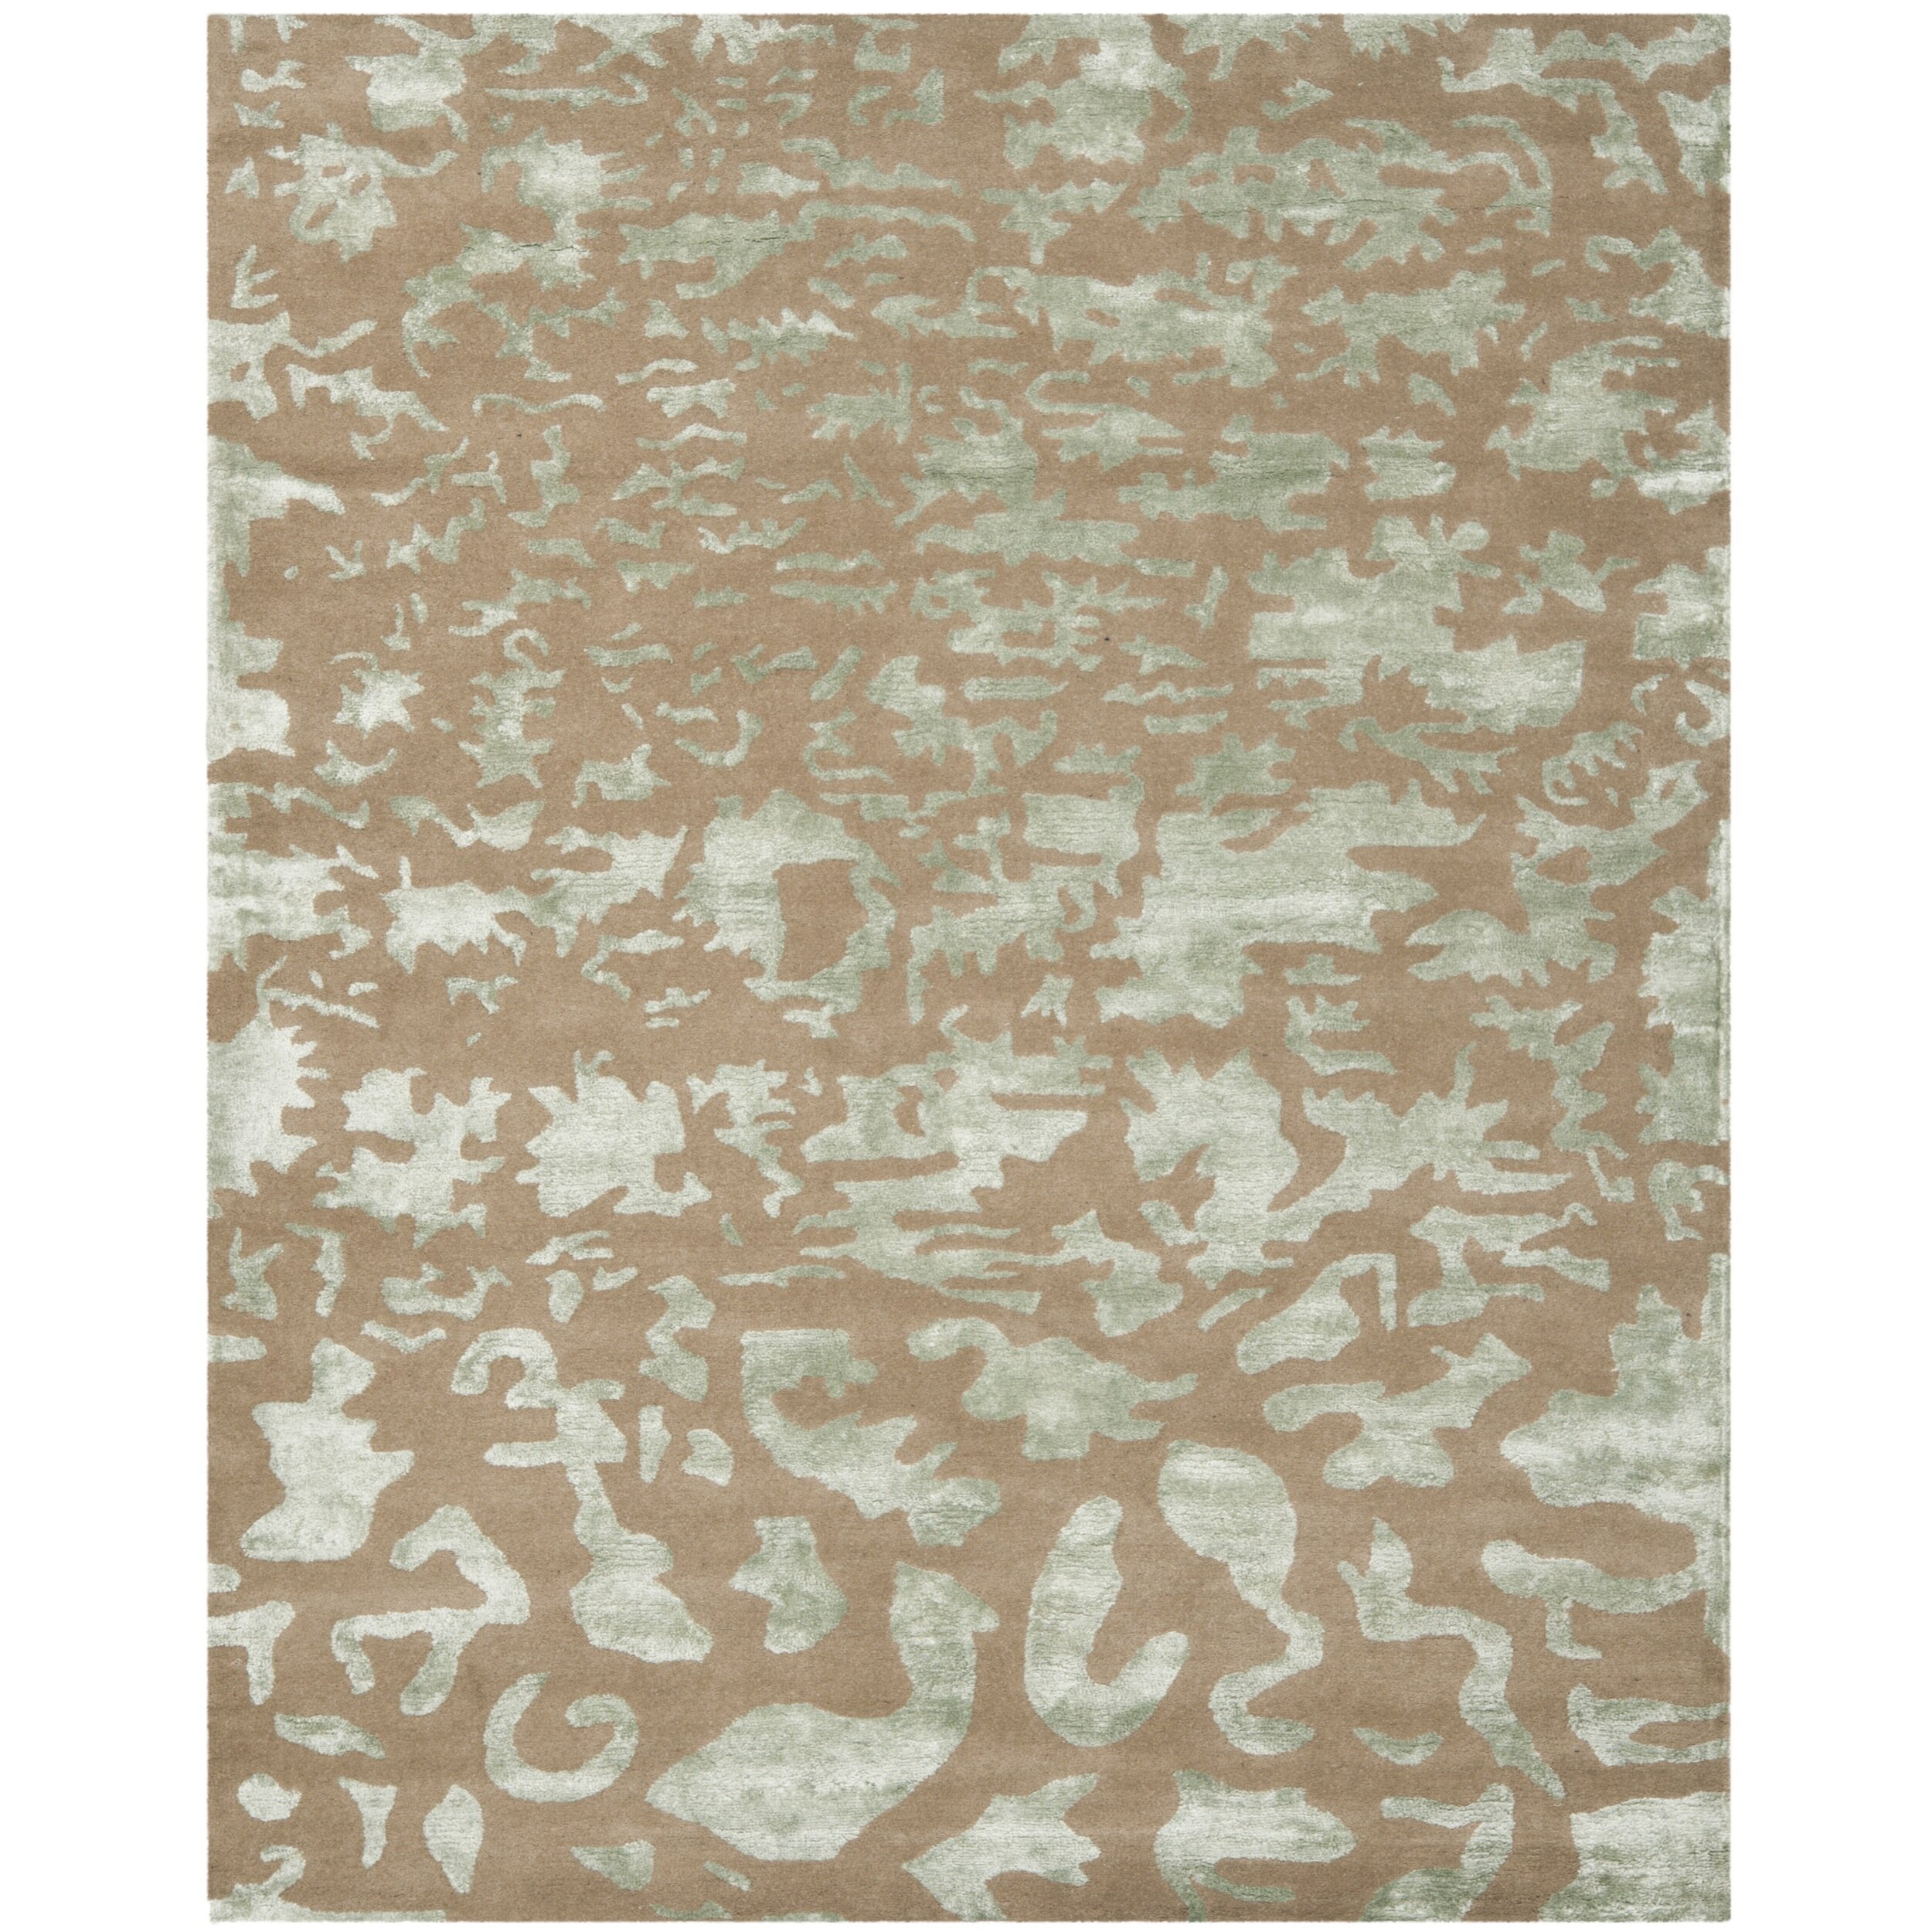 Safavieh soho taupe blue area rug reviews wayfair for Area carpets and rugs